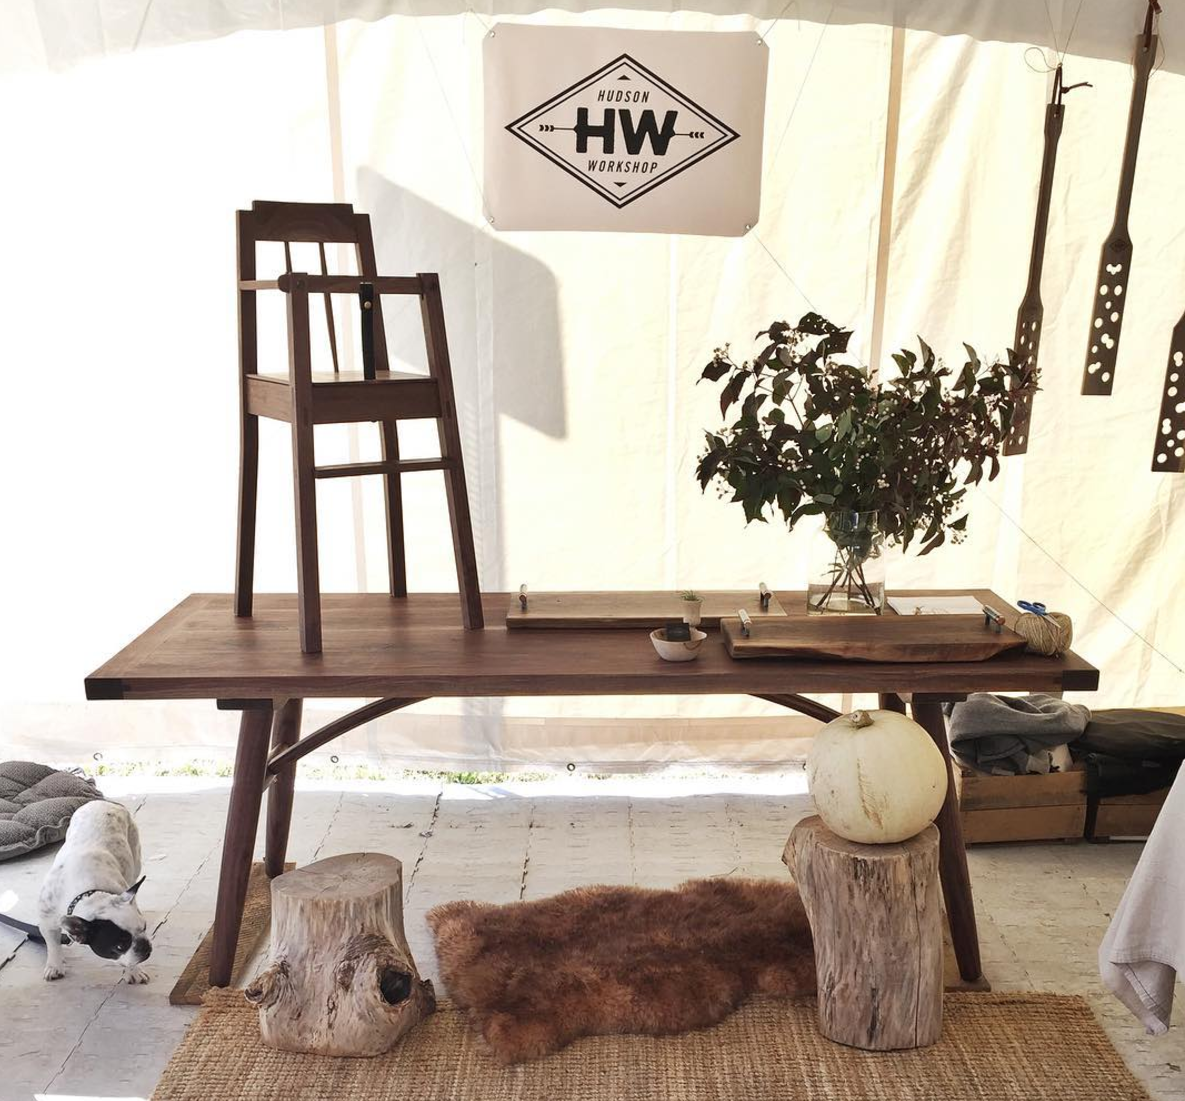 hudson workshop at field and supply 13